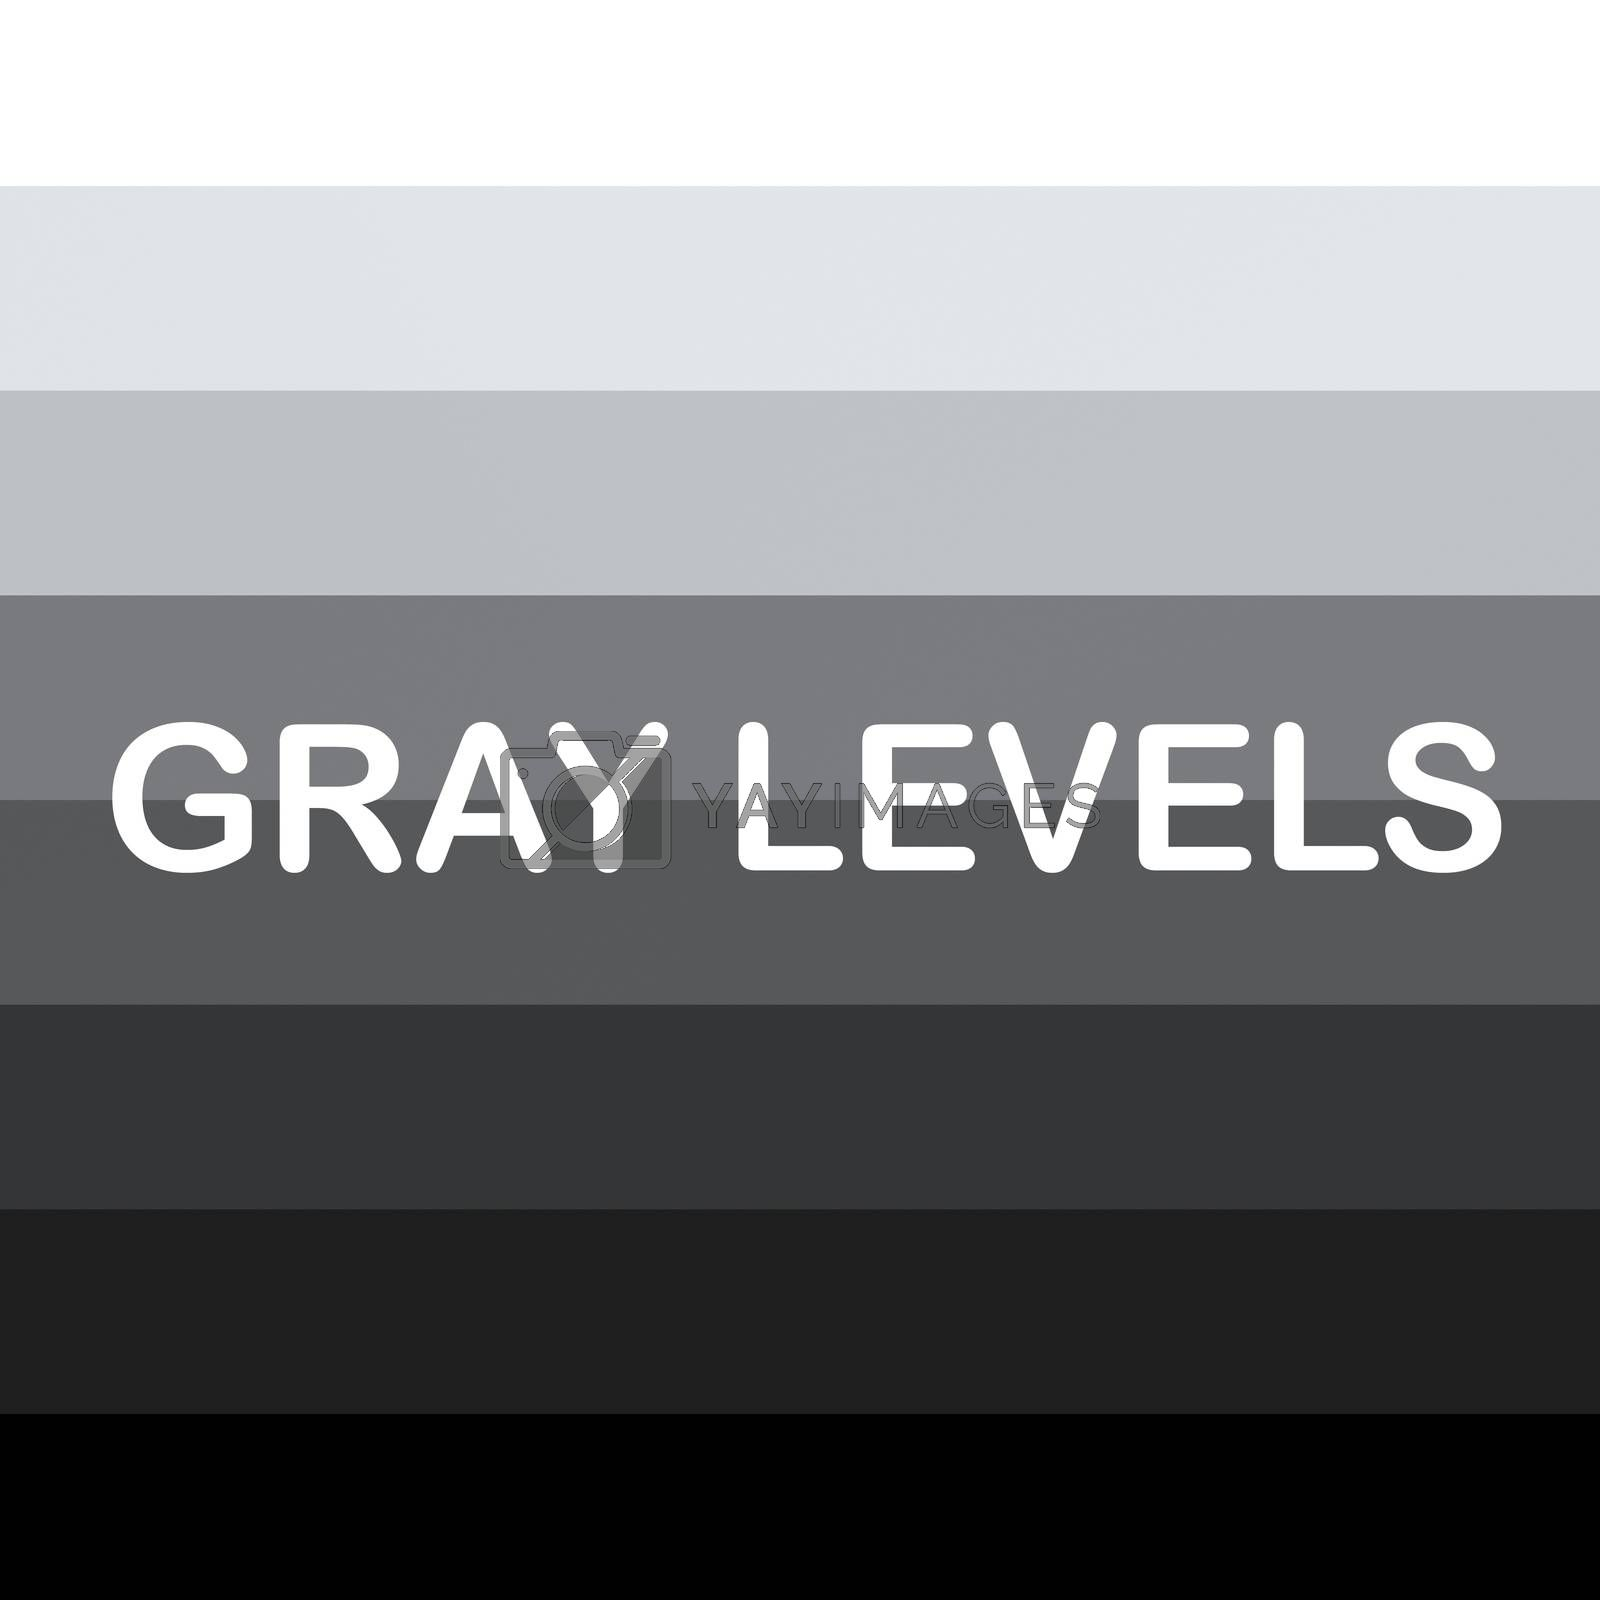 Render illustration of GRAY LEVELS title, over background composed of 8 various strips dislpaying gradualy change from white to black.